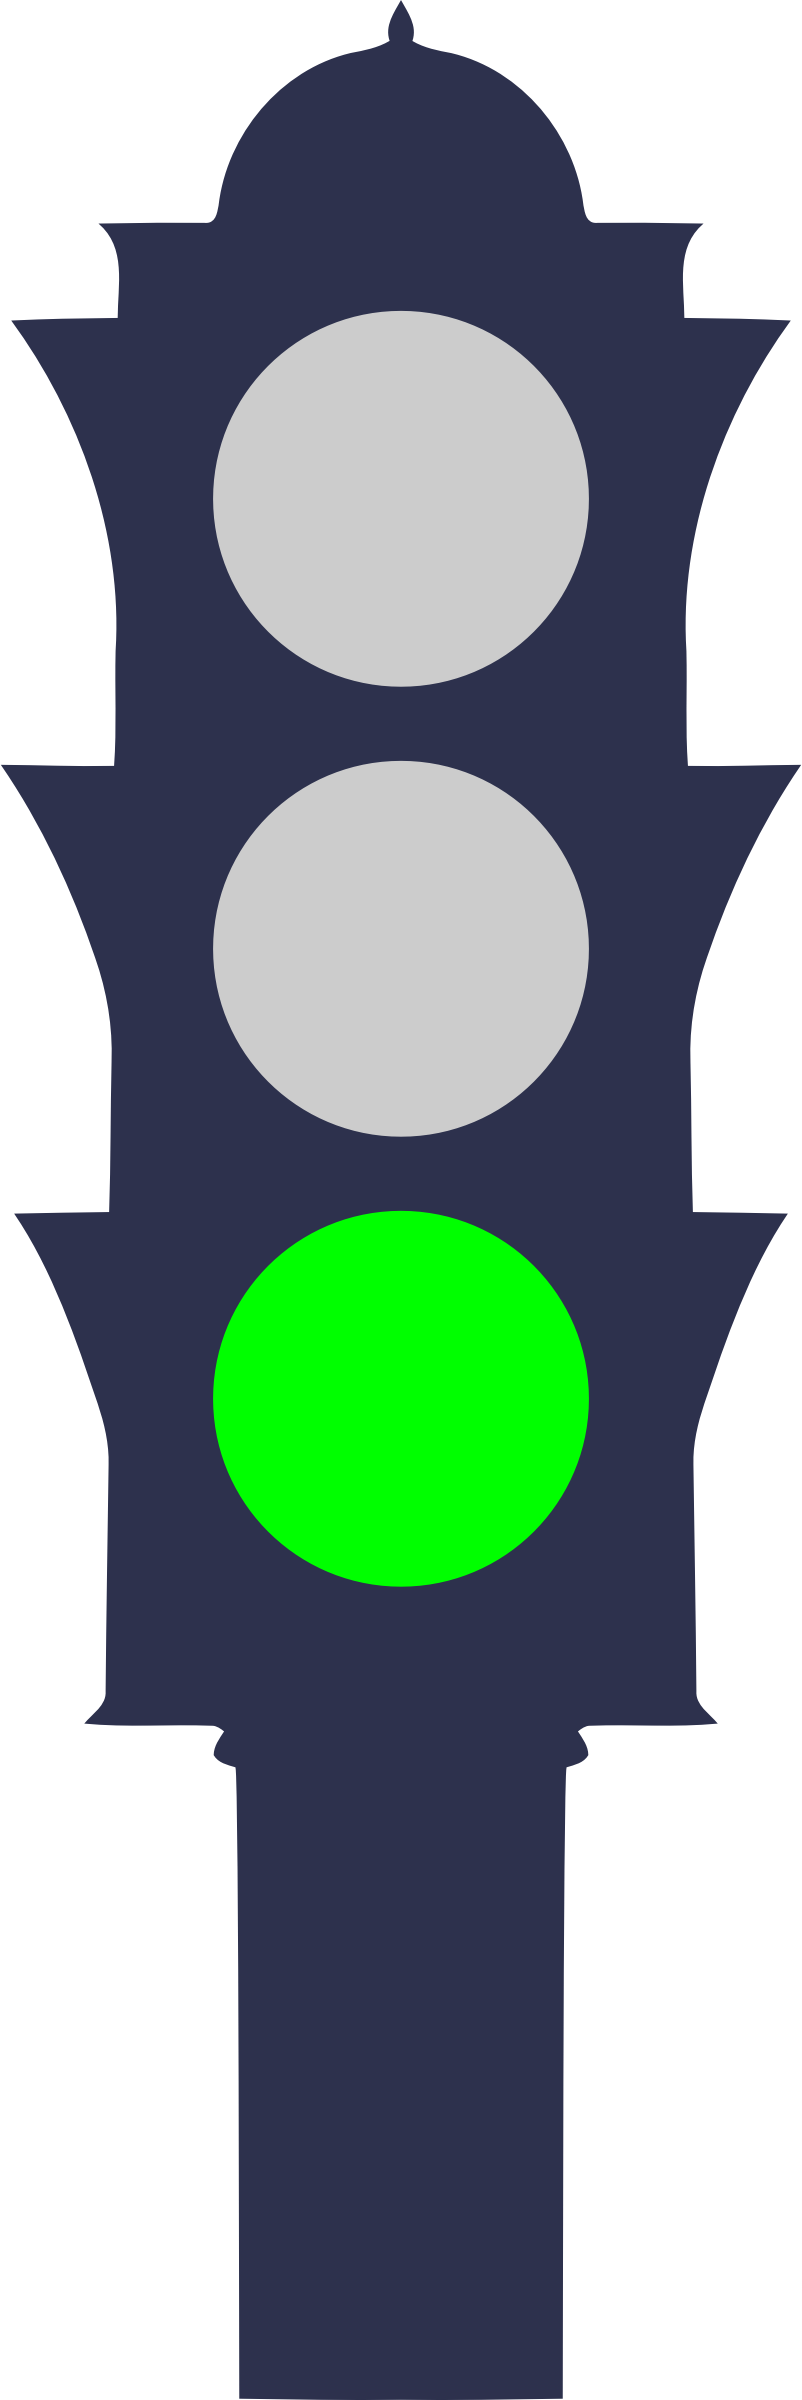 Green traffic light clipart clipart images gallery for free download.